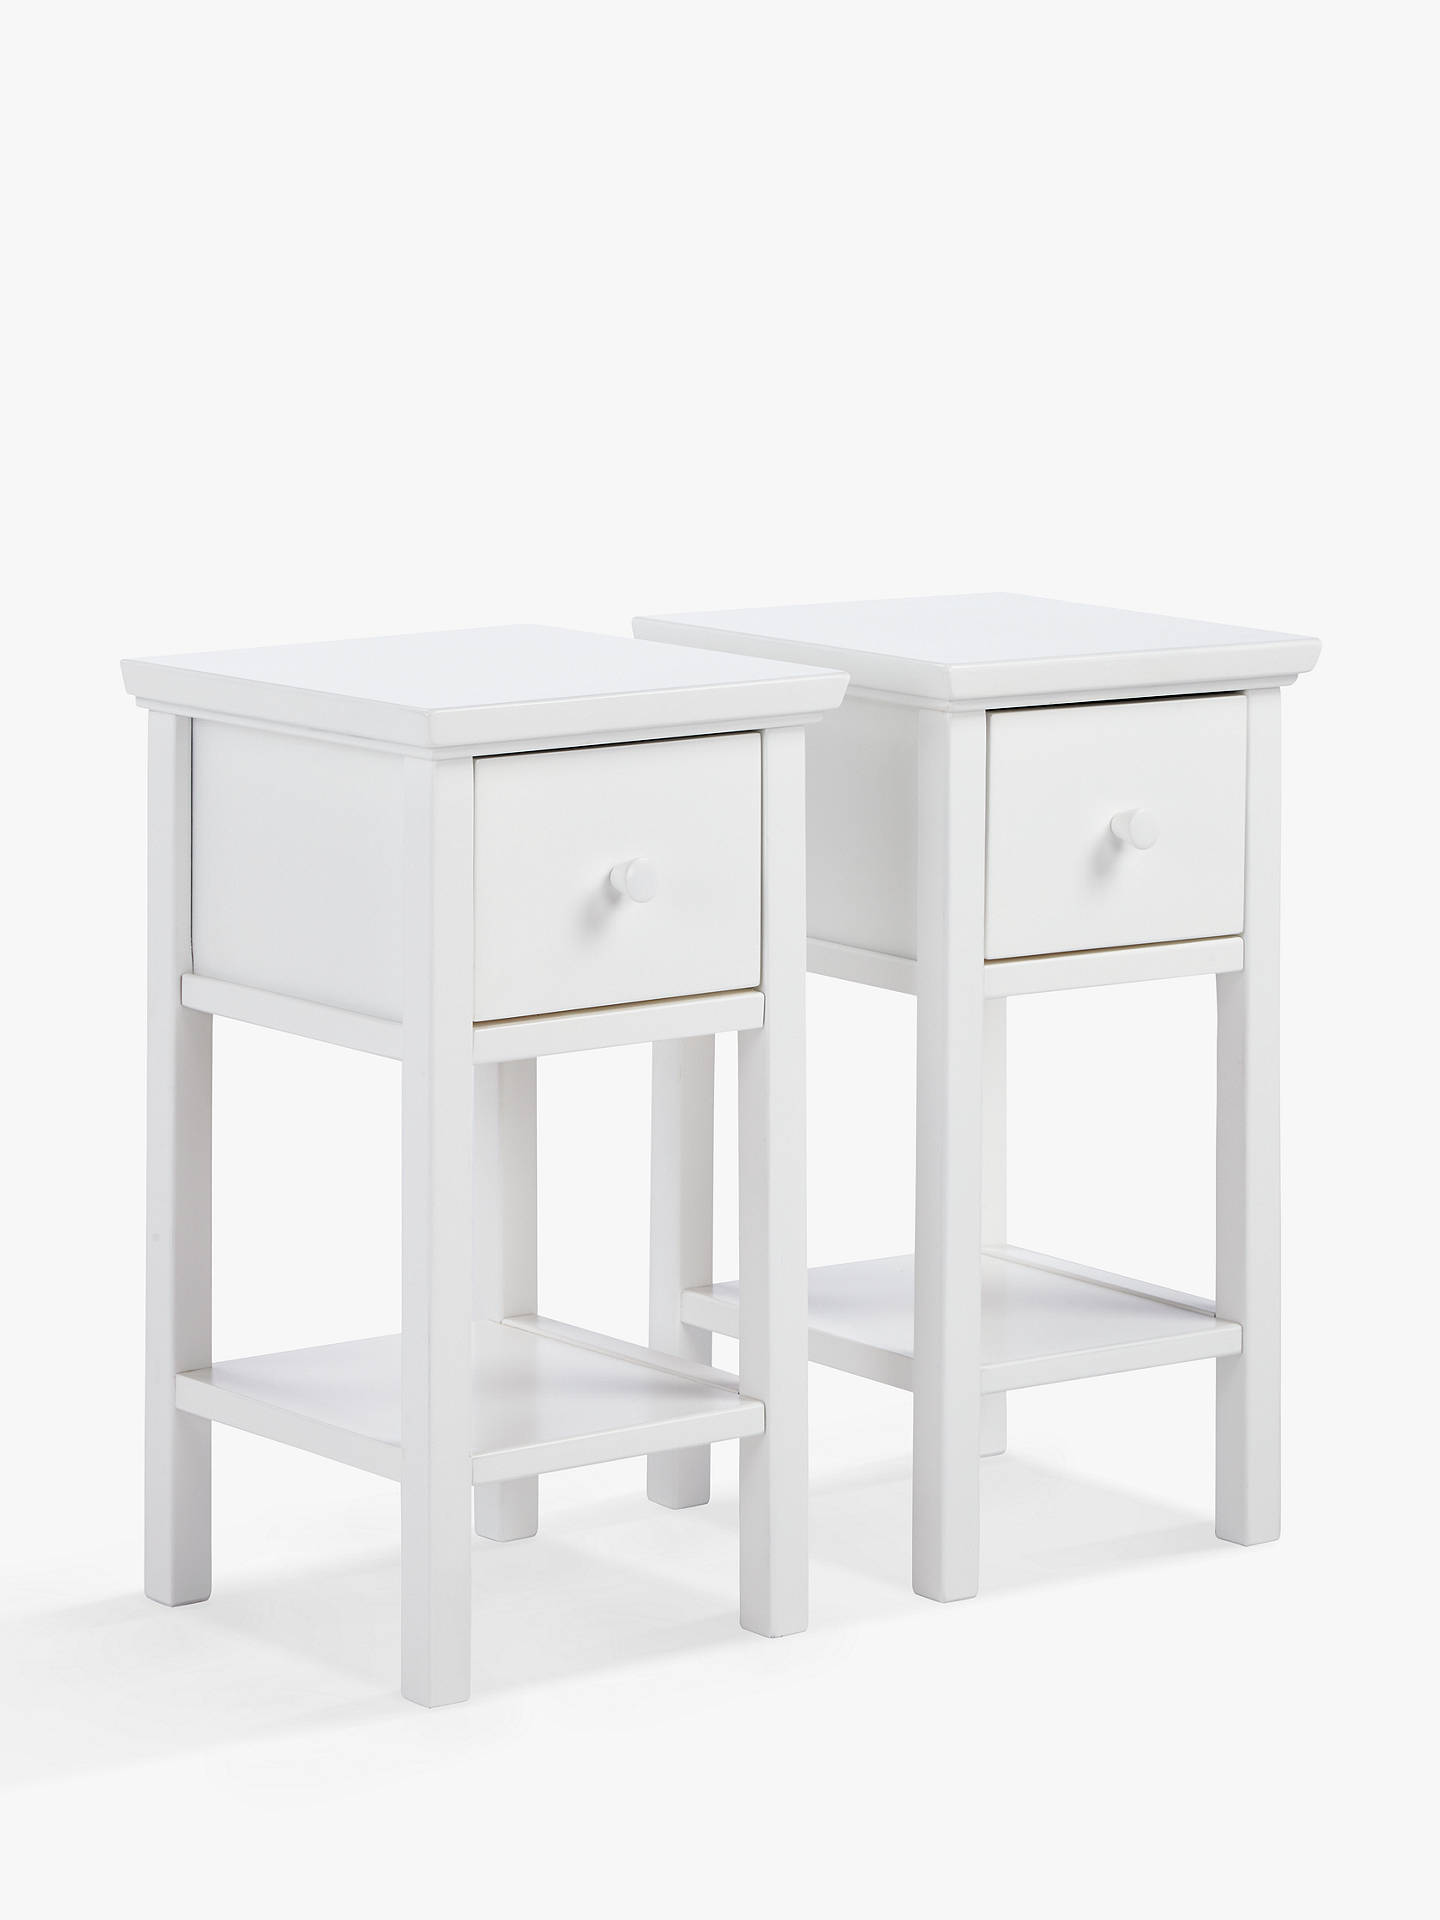 John Lewis & Partners Wilton Set of 2 Bedside Tables, White